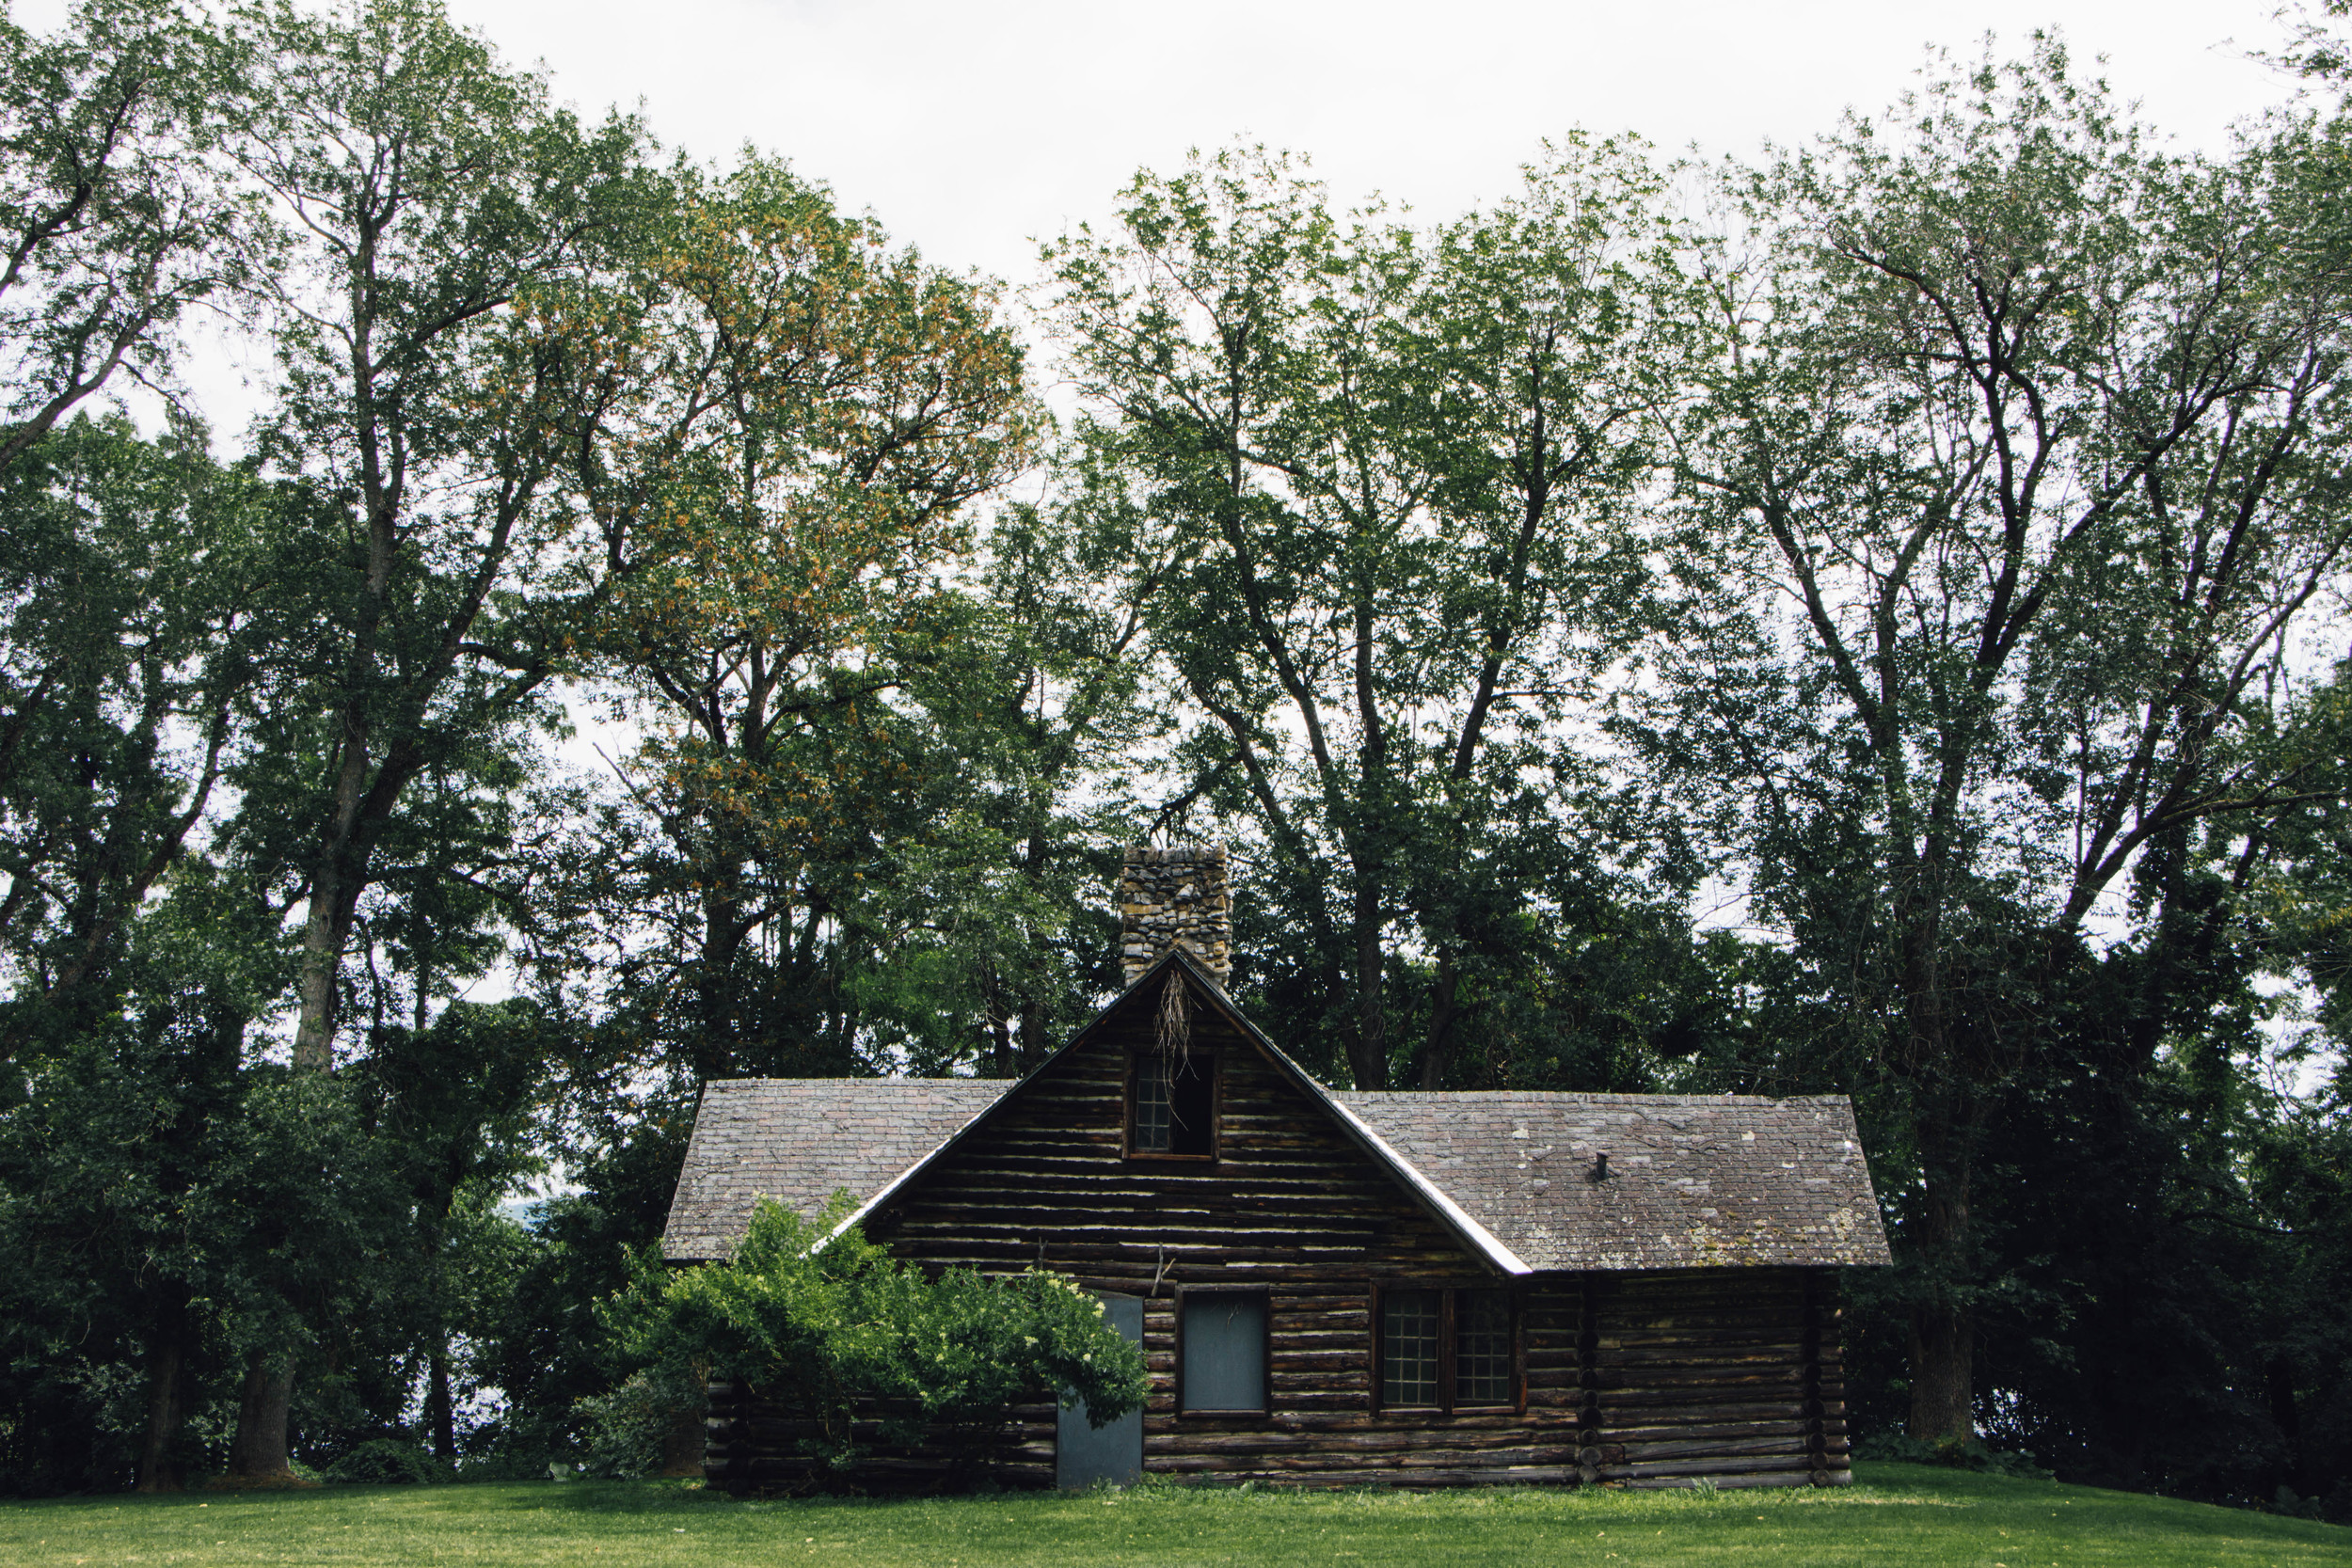 Abandoned cabin in King's Garden at Fort Ticonderoga, 2015